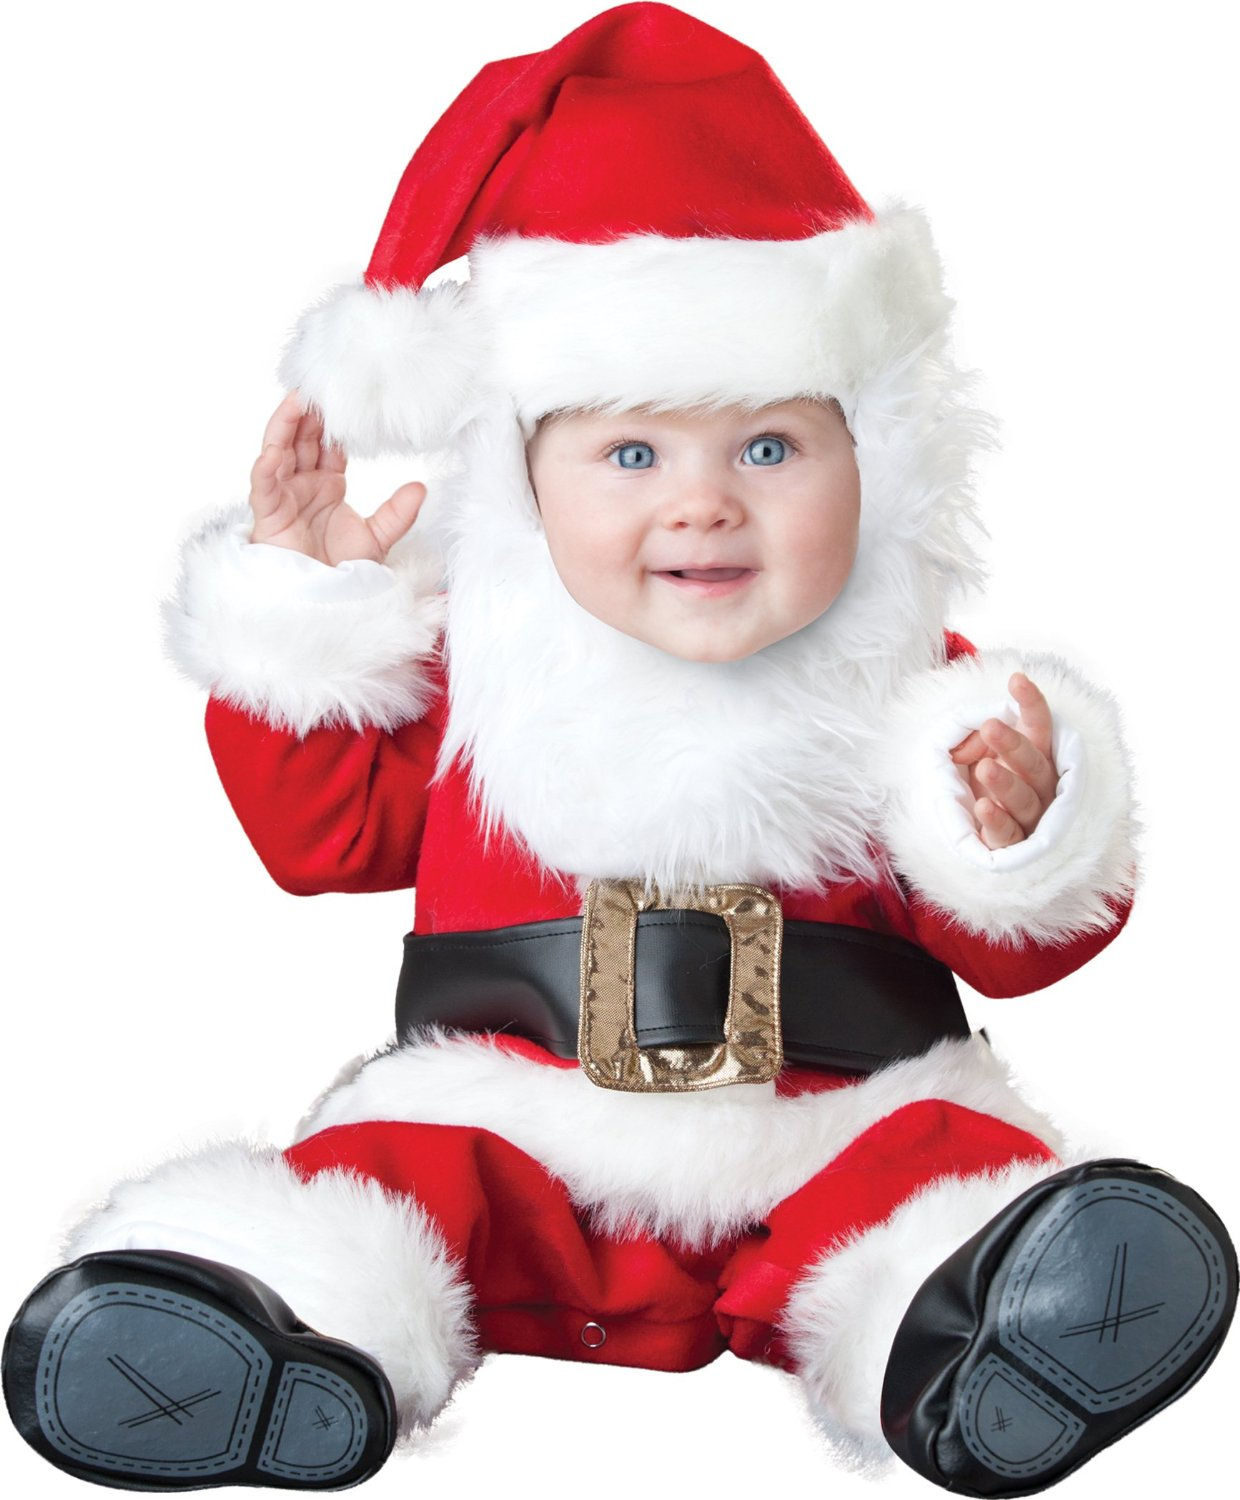 You don't have to visit the North Pole to find everything you need for the perfect Santa Claus costume. Don't forget a Santa outfit for the kids! Whether it's your baby's first Christmas or for your Santa-obsessed toddler, we've got their costumes covered.